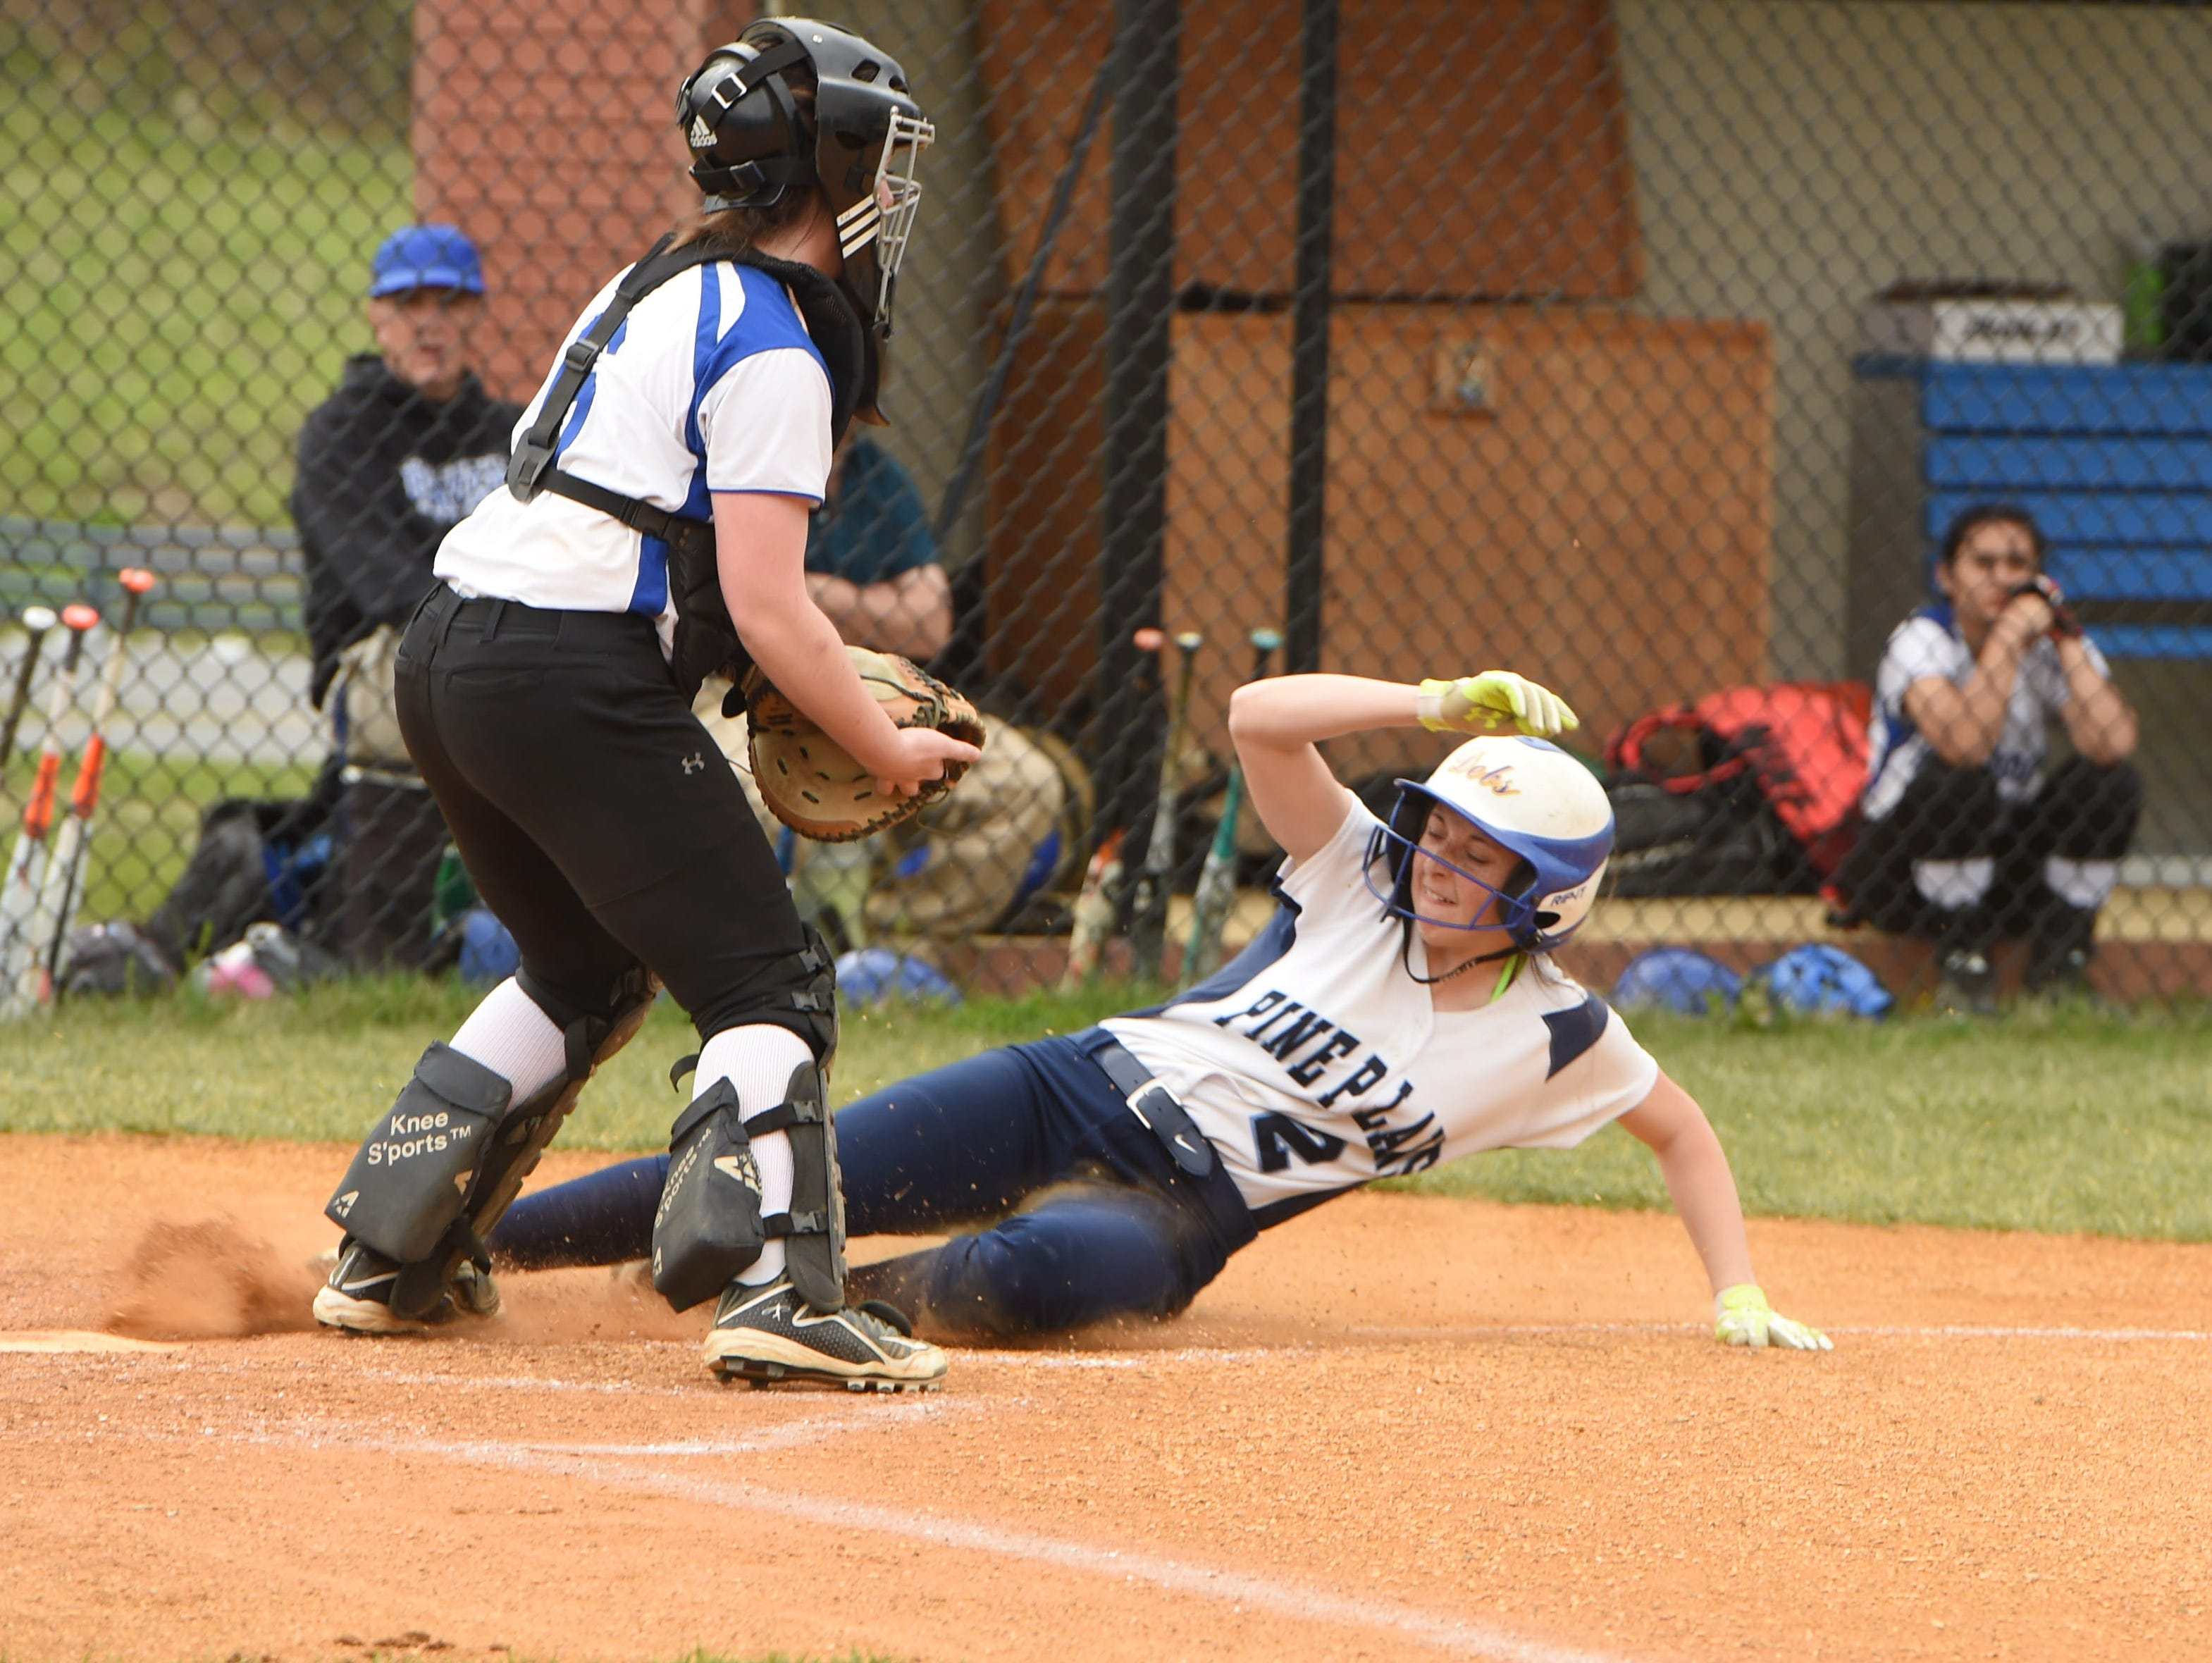 Pine Plains' Haley Strung slides safely into home while Millbrook's Abby Hackbarth waits for the throw during Monday's game.